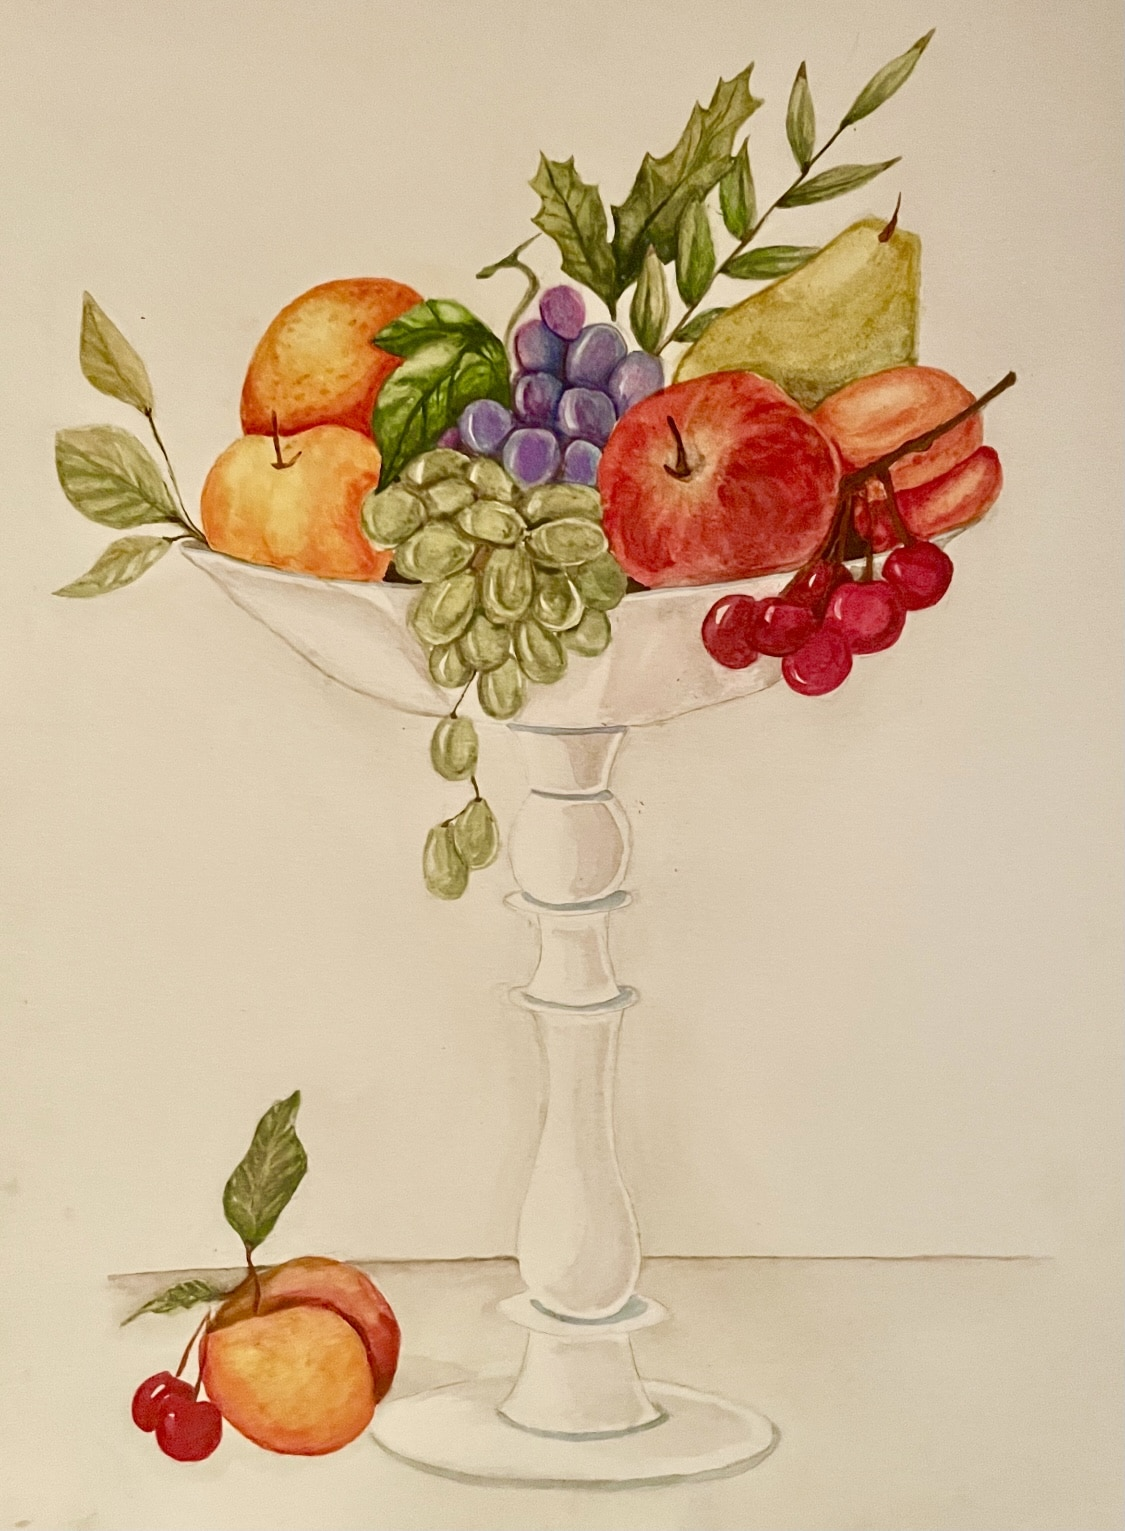 Fruit bowl water colors by Eesha Student Work